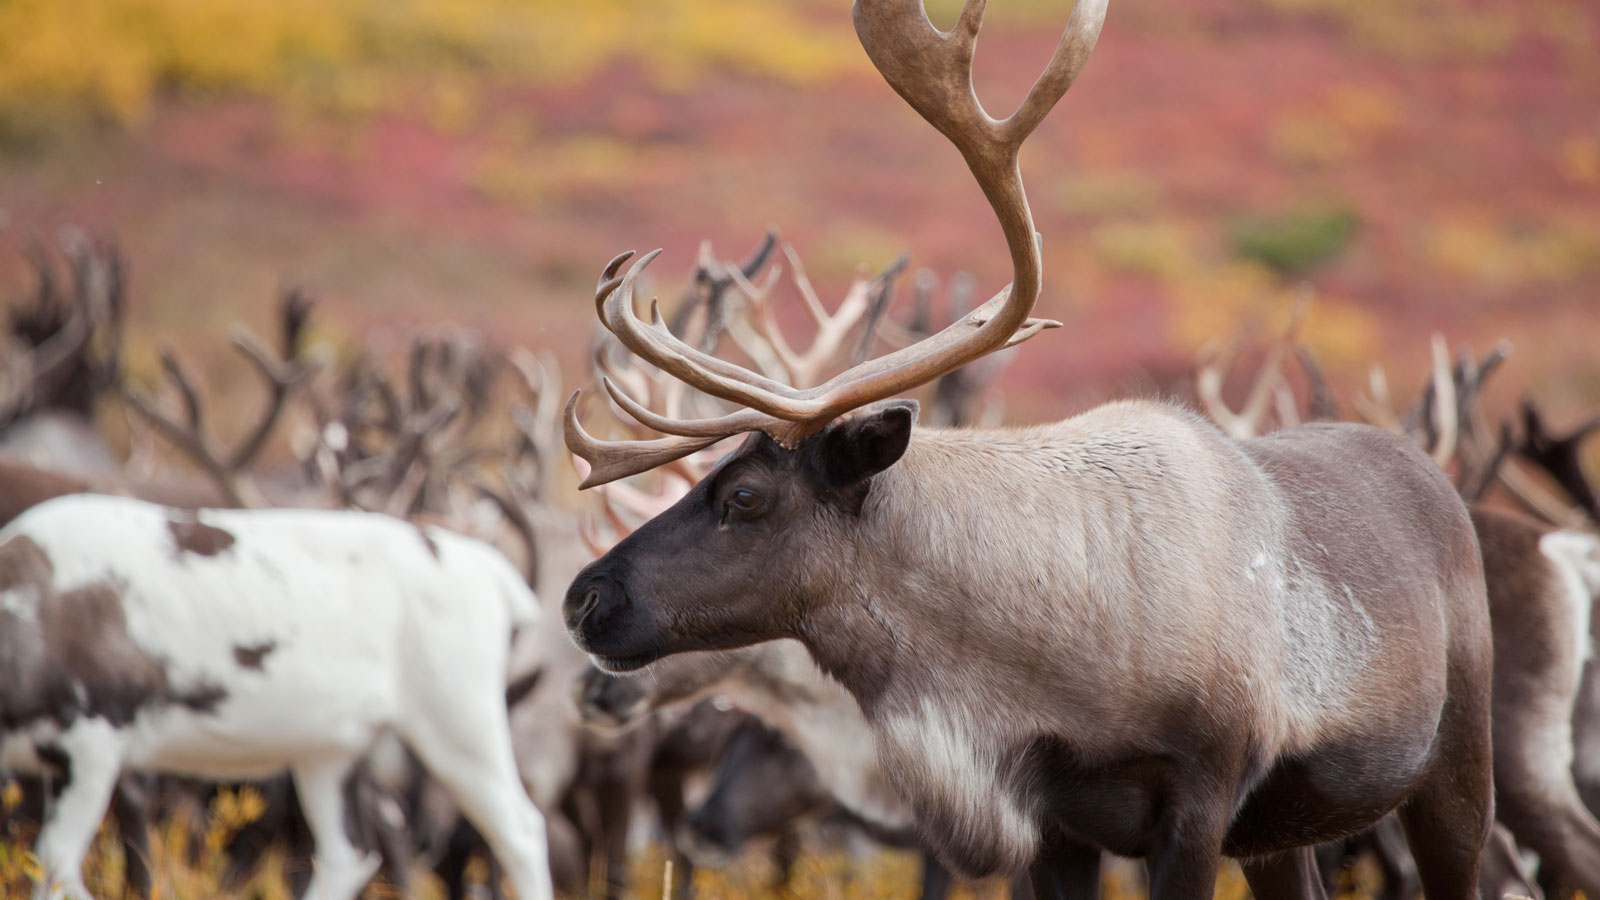 <h3>A DIZZYING ARRAY OF WILDLIFE</h3><h5>More than 200,000 Porcupine caribou migrate to the Arctic coastal plain to give birth.</h5>